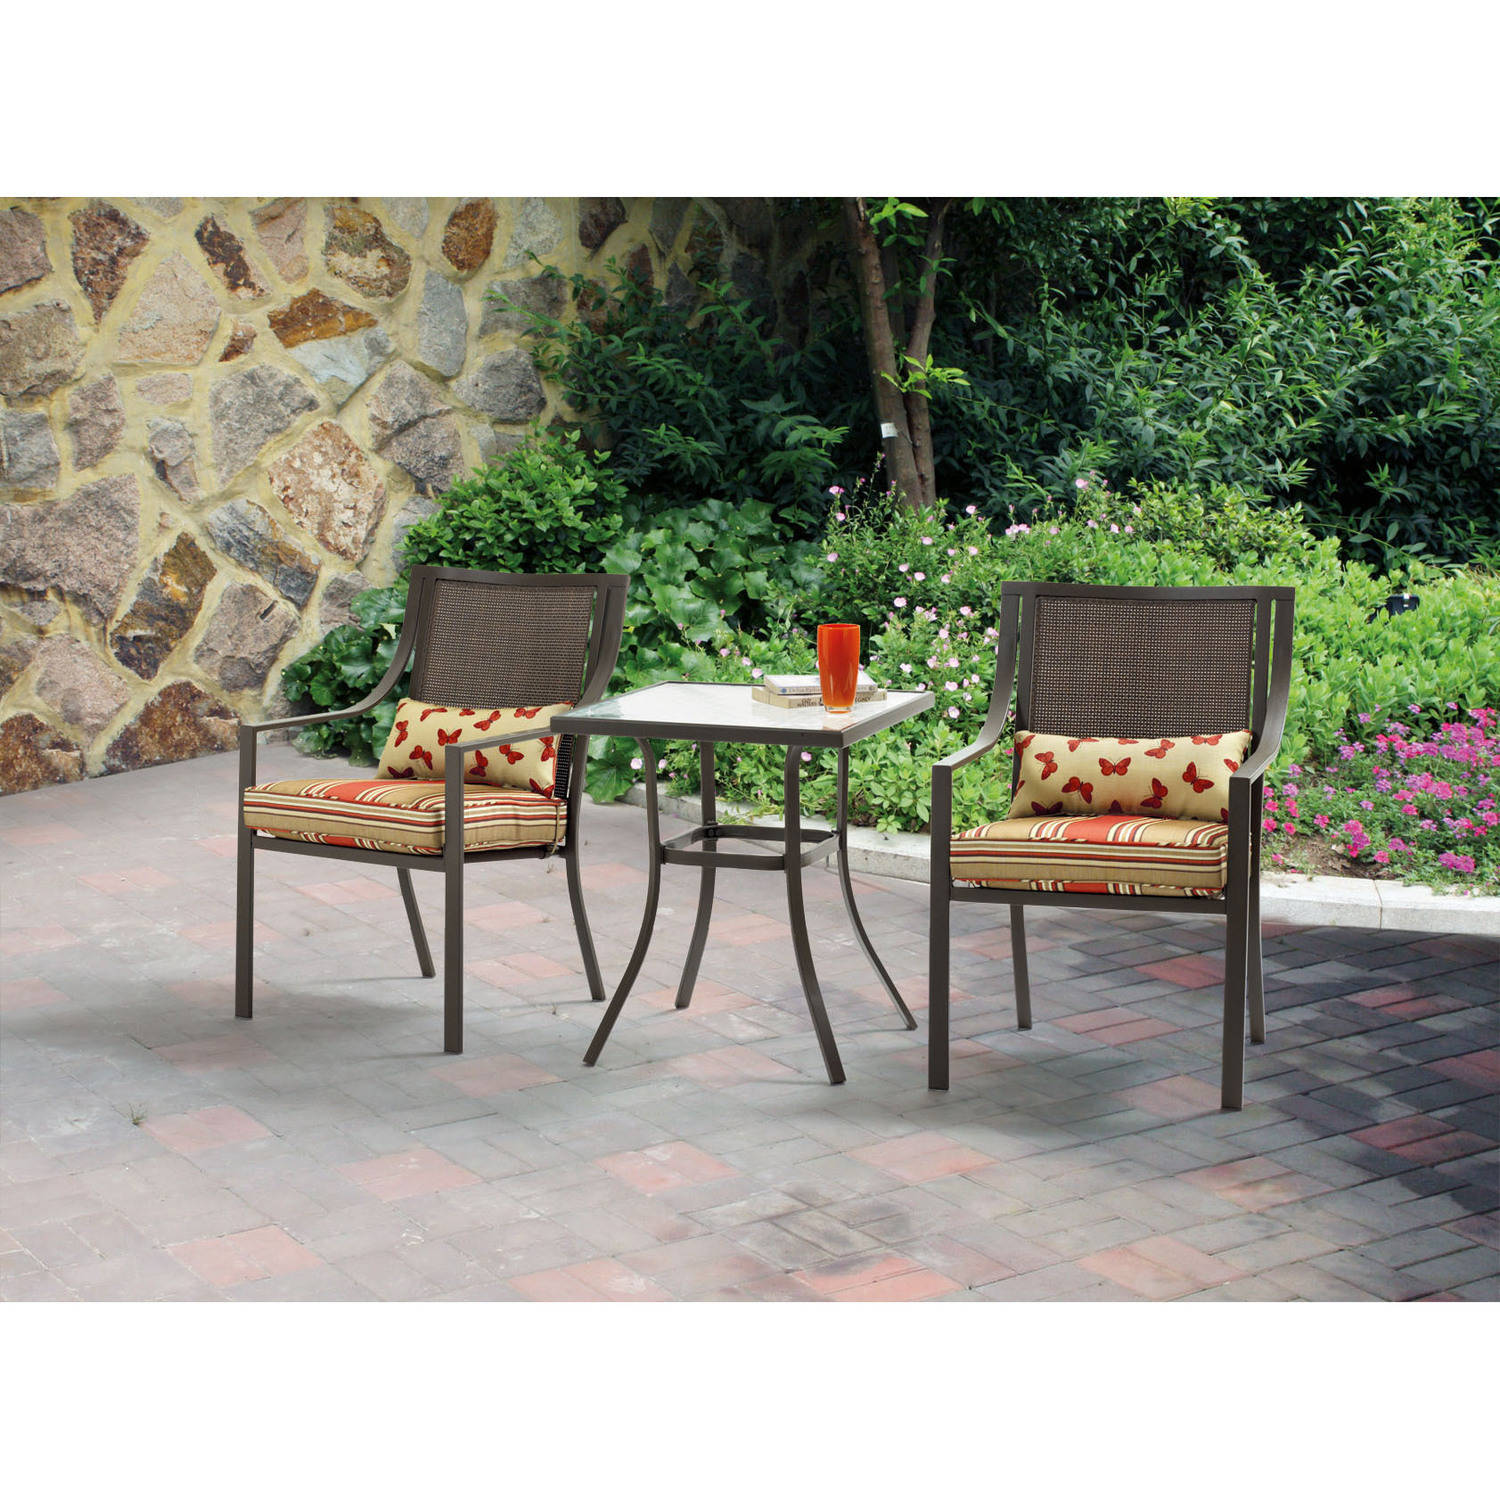 mainstays alexandra square 3piece outdoor bistro set red stripe with butterflies seats